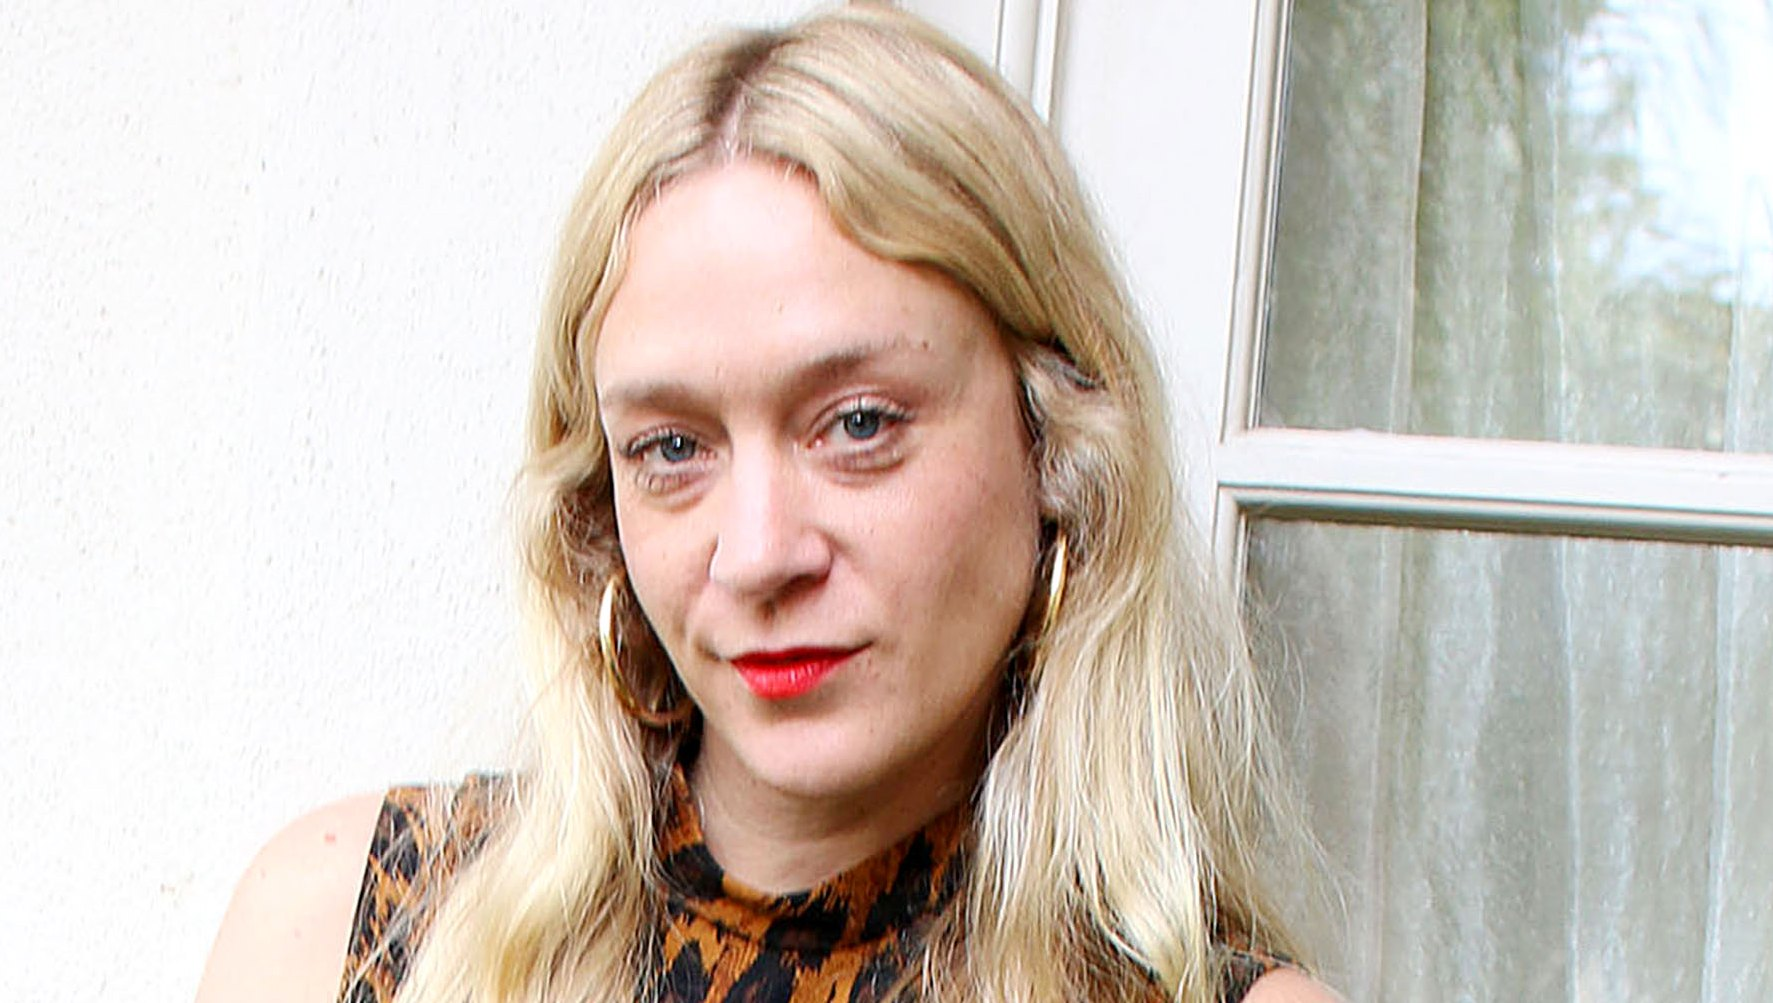 Chloe Sevigny Reveals Secret Six-Pack, Joins Hollywood's Abs Club